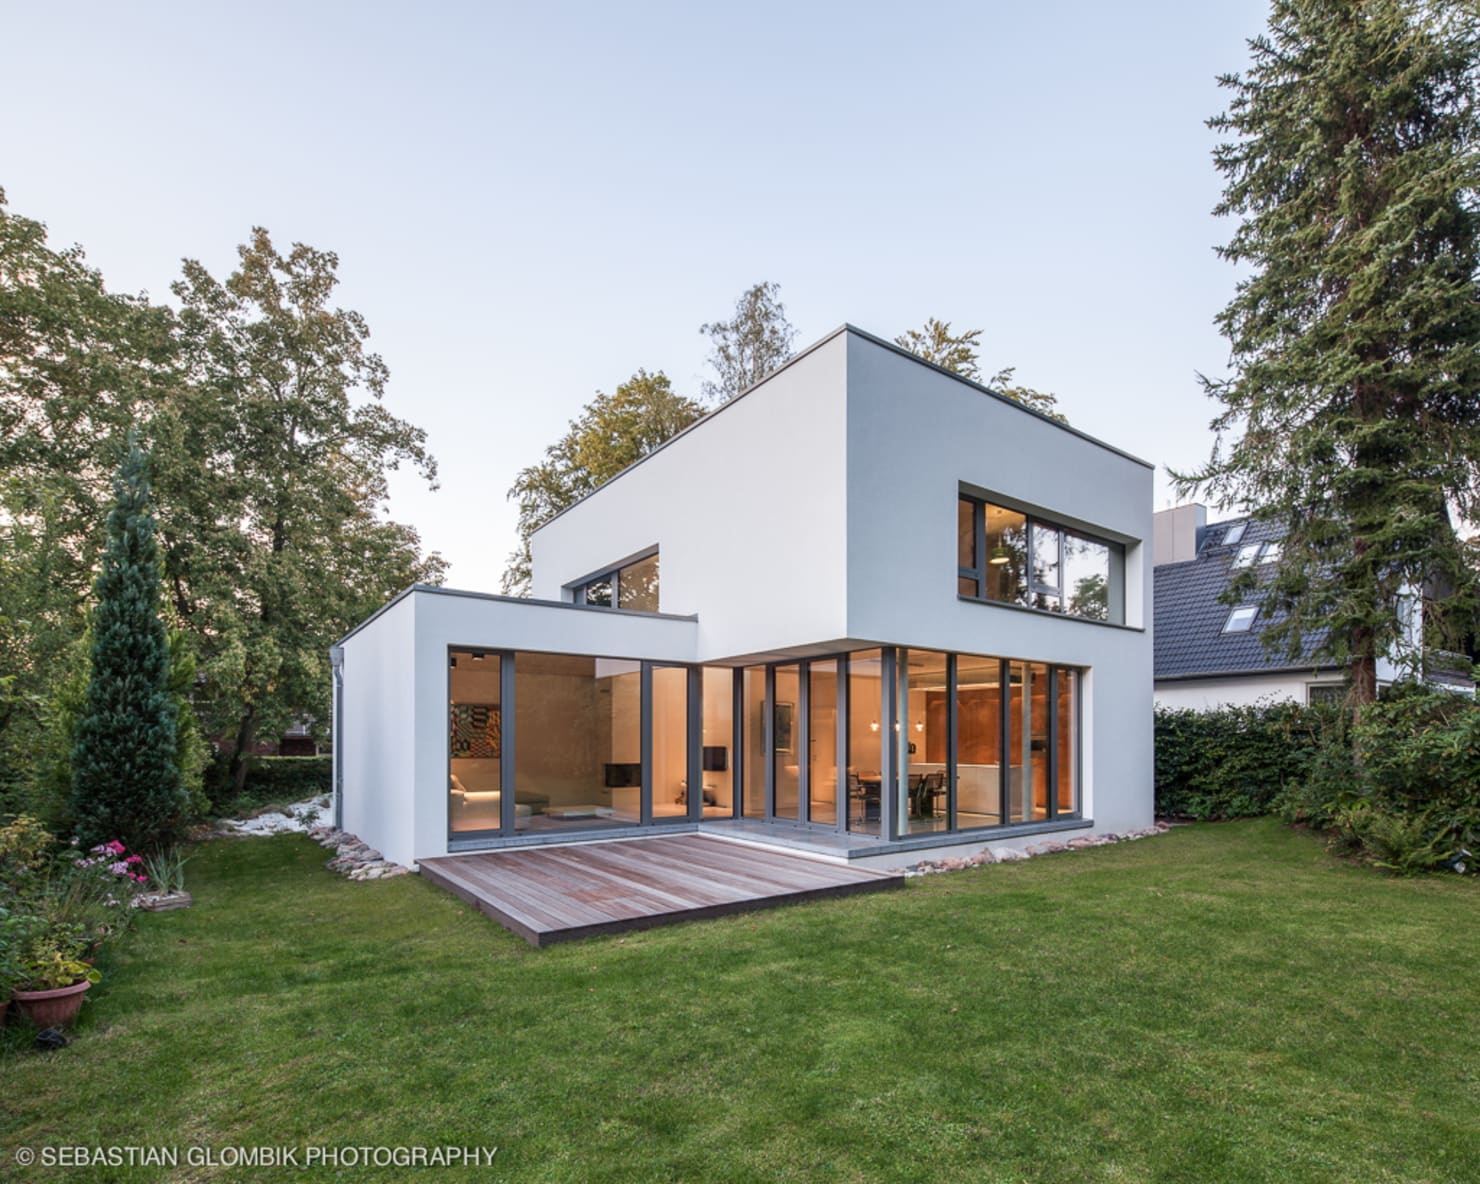 A Concrete Home That Fuses Creativity With Functionality